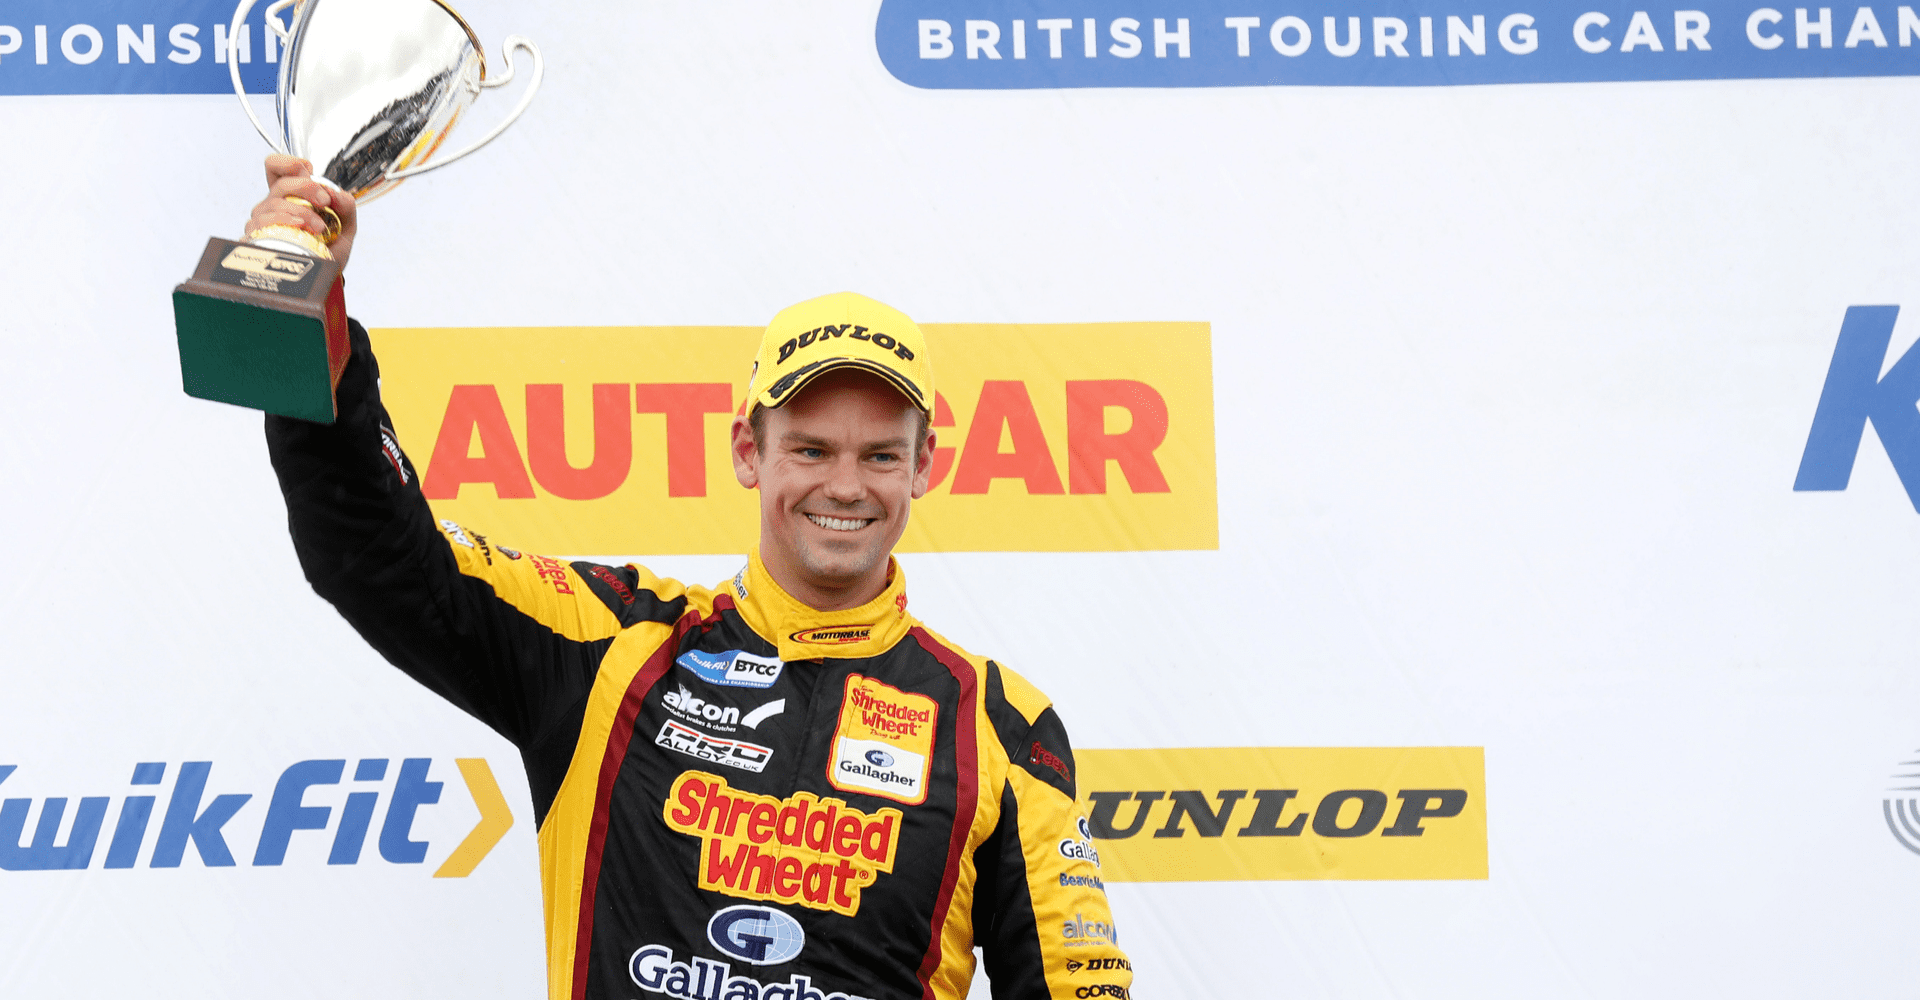 Team Shredded Wheat Racing with Gallagher signs off in style with podium and double Indy win at Brands Hatch